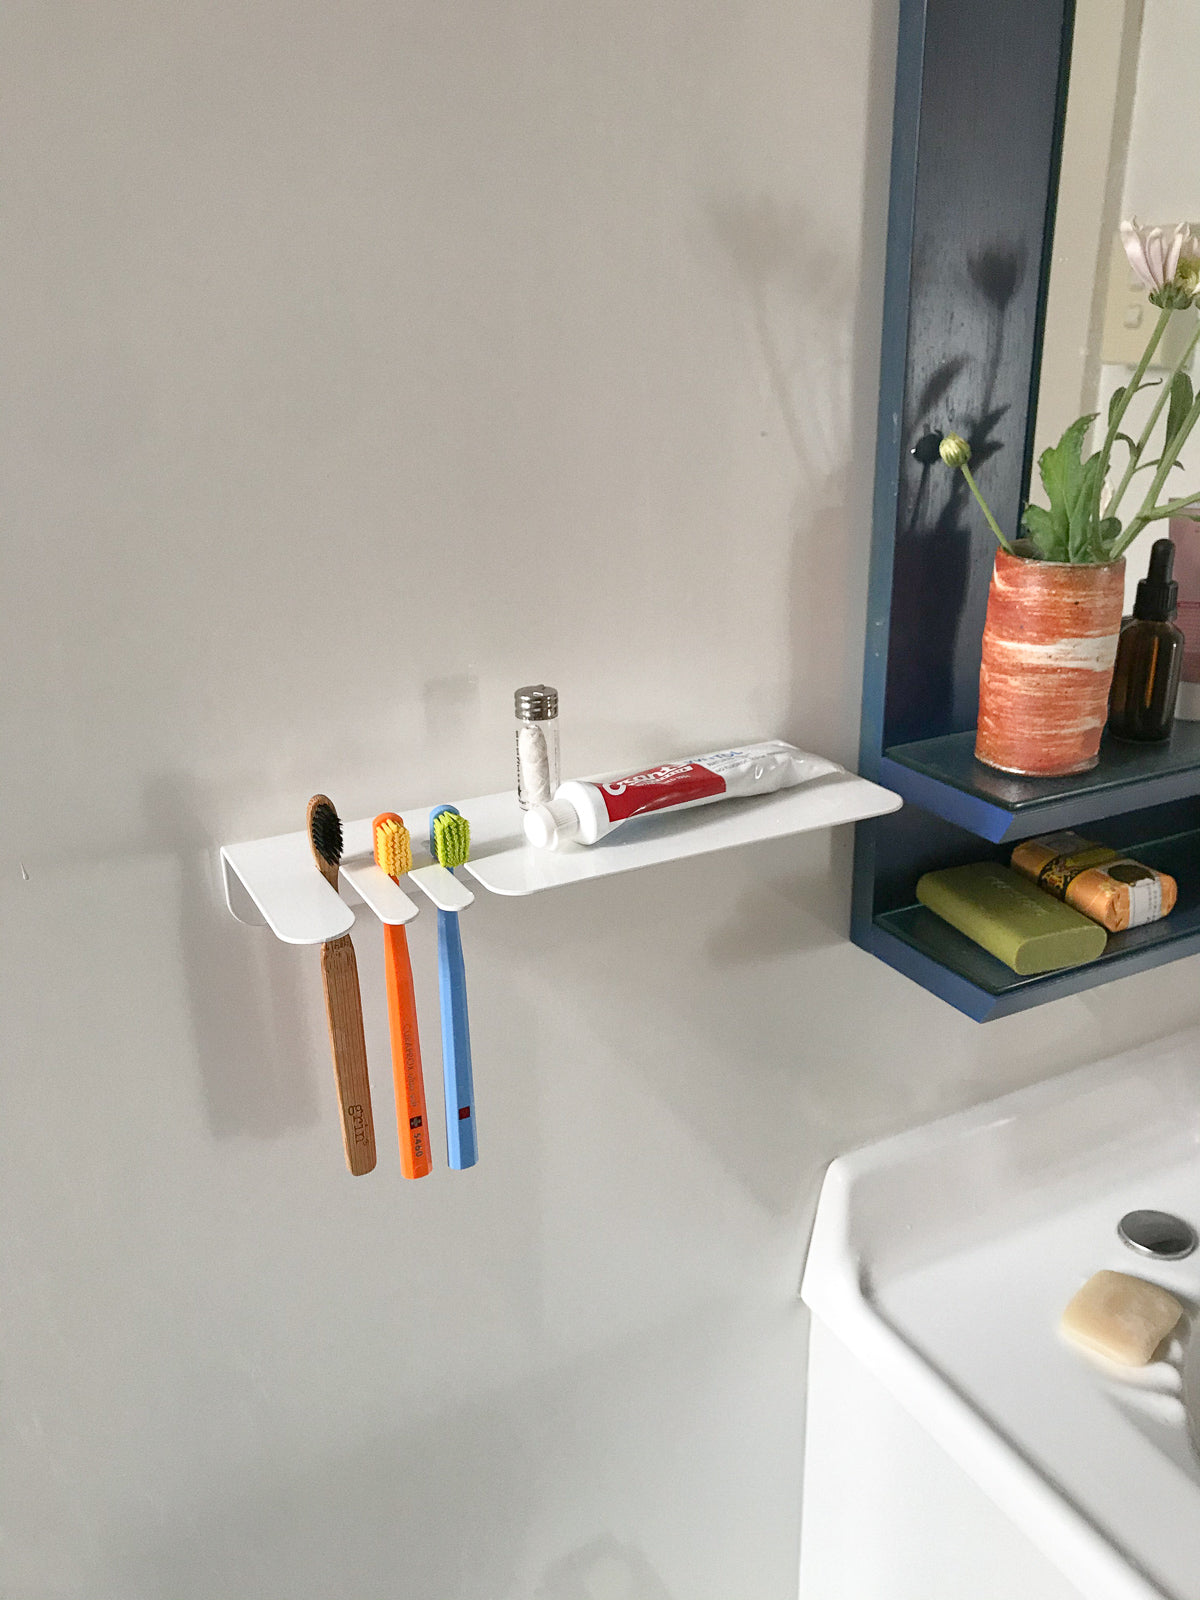 Toothbrush Shelf